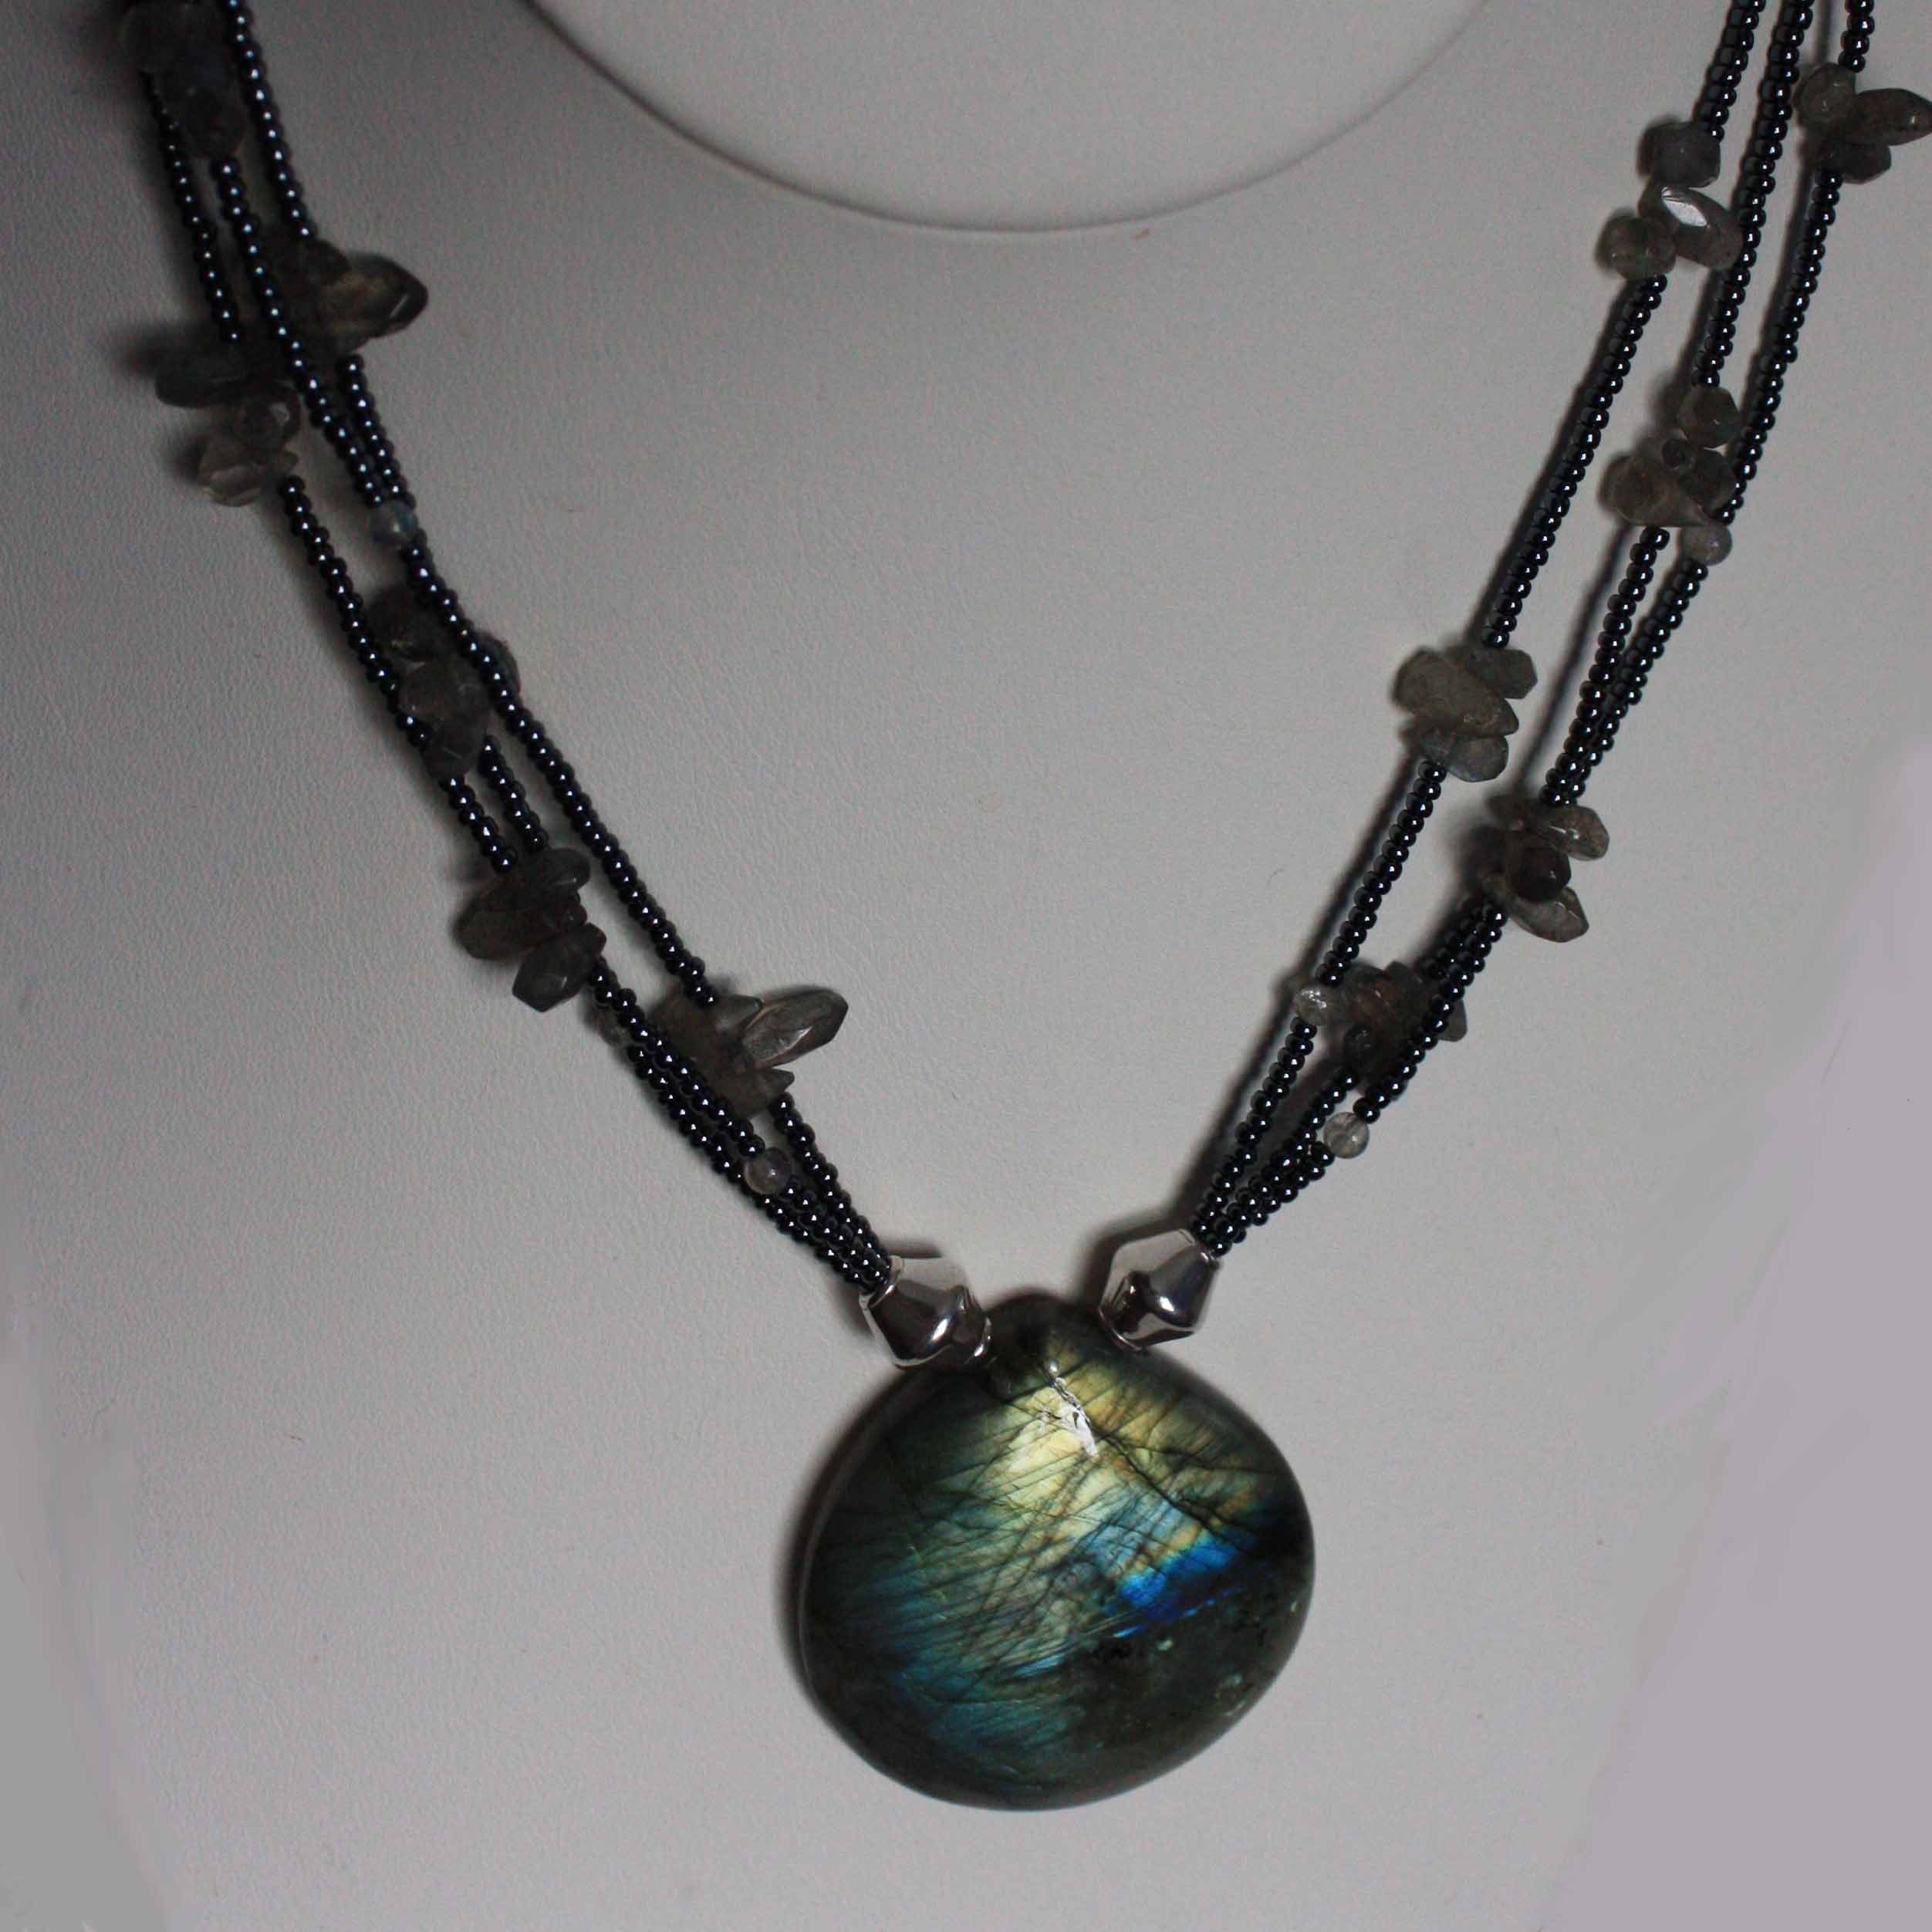 Handmade Labradorite Pendant Necklace Shine by capitalcitycrafts from etsy.com